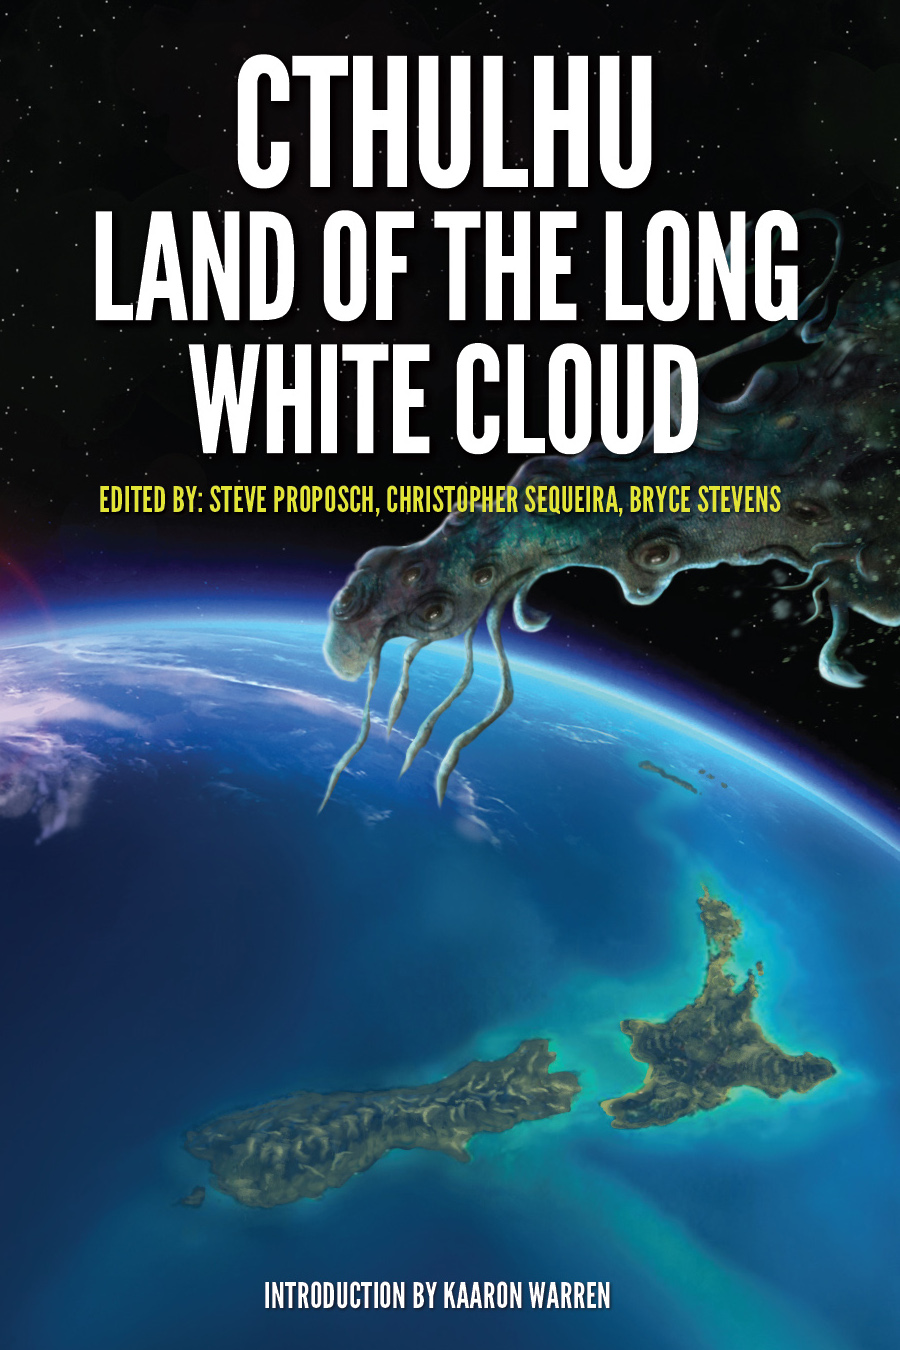 Cthulhu Land of the Long White Cloud FRONT PAGE